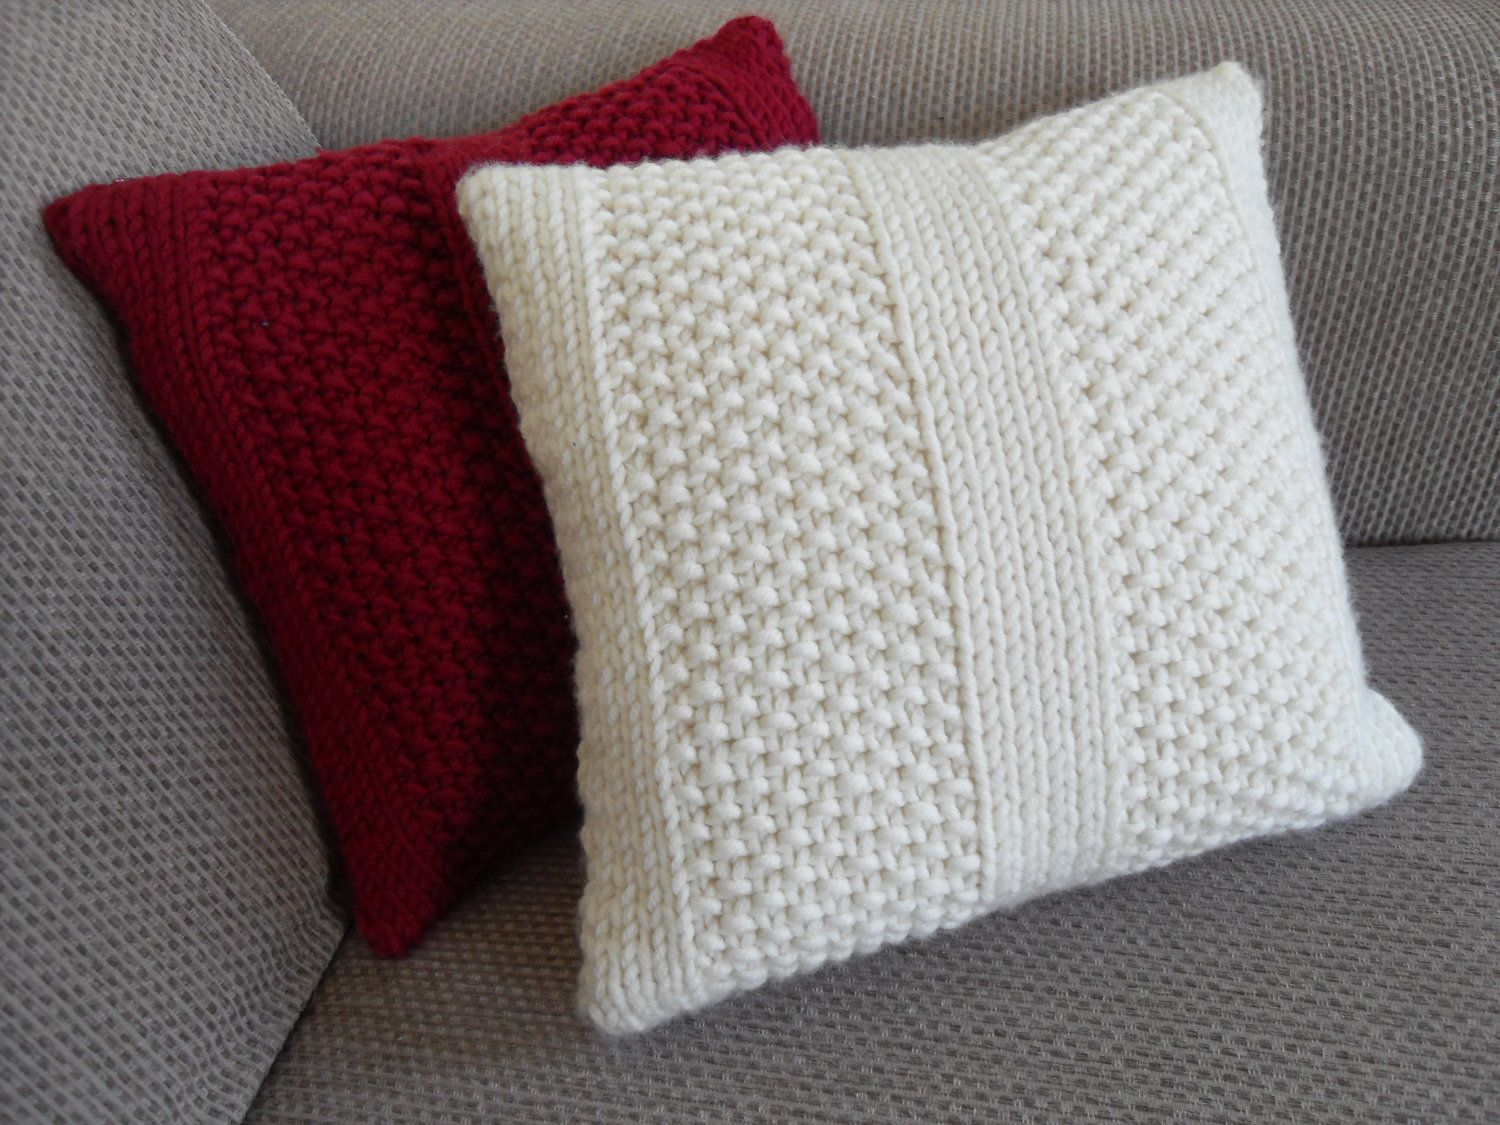 Knitting pillow patterns for beginners knitting cushions covers knitting pillow patterns for beginners knitting cushions covers patterns bankloansurffo Choice Image